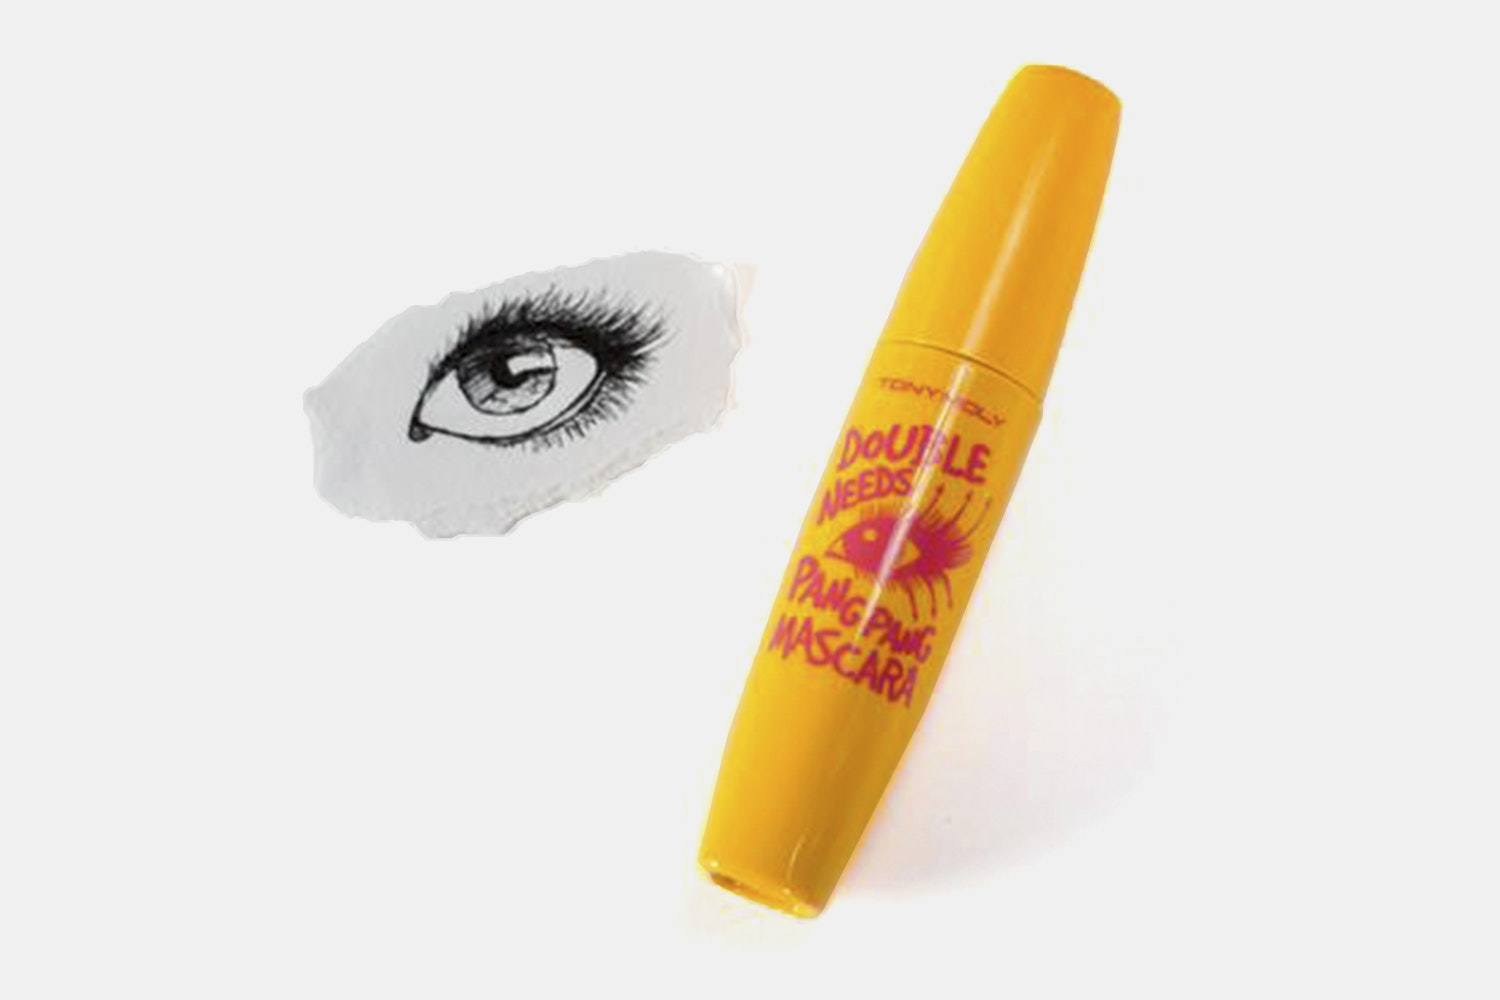 Tony Moly Double Needs PangPang Big Volume Mascara